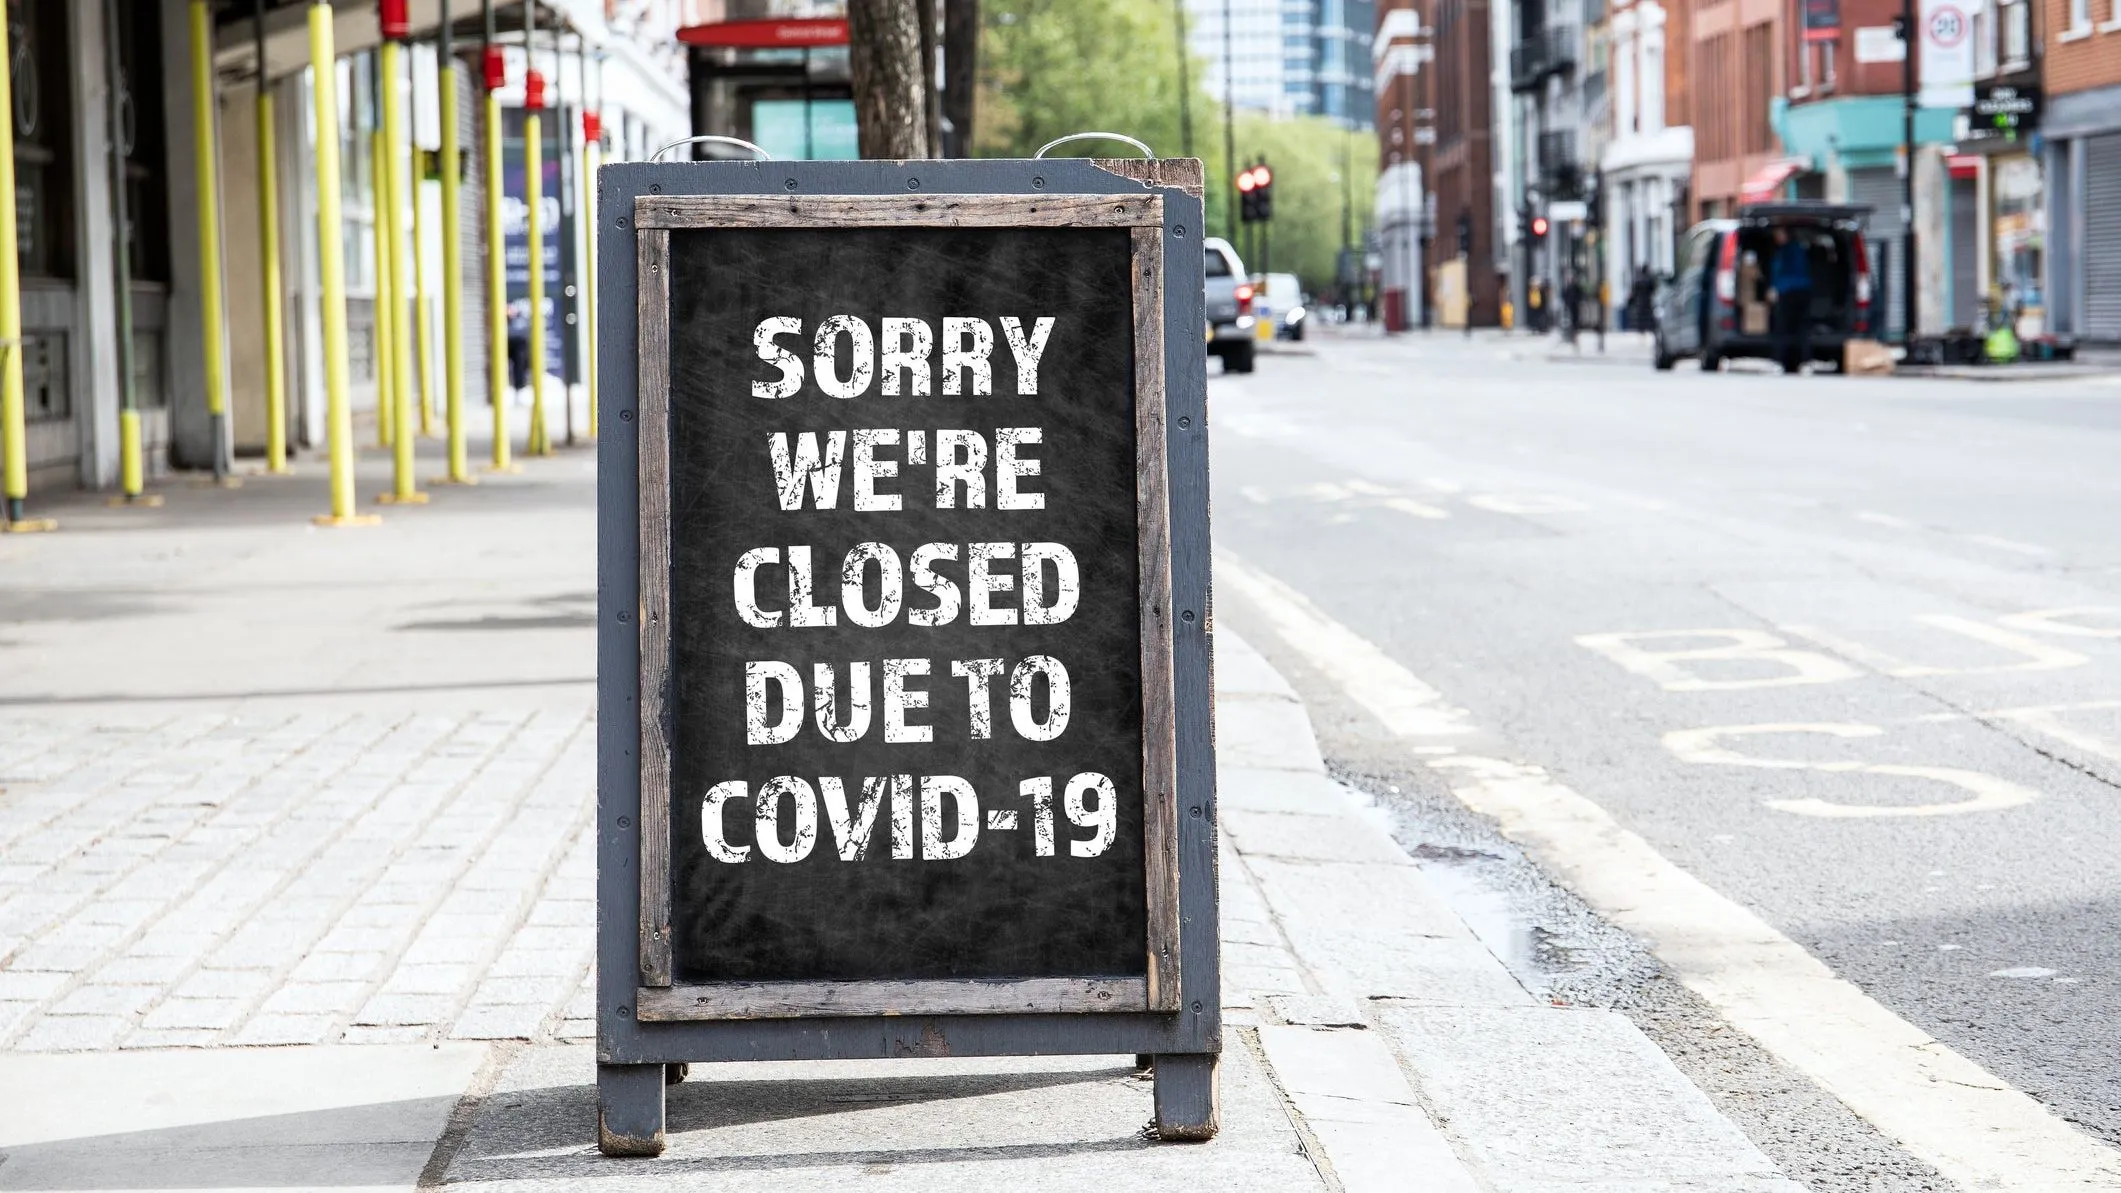 Businesses are closing due to Covid-19